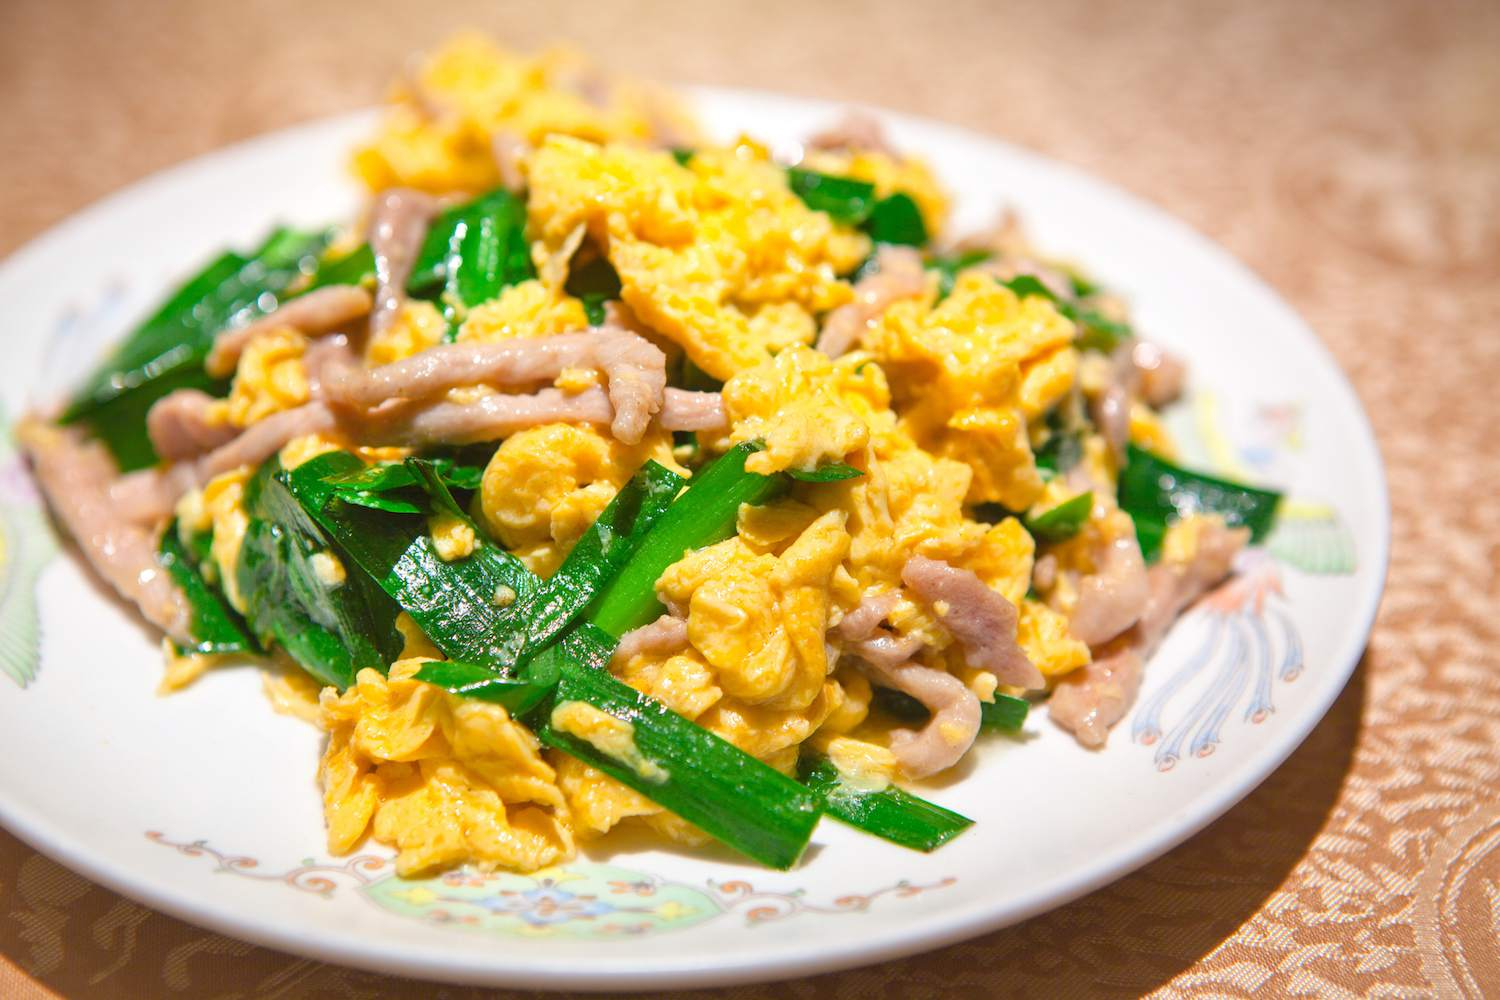 Top 6 Chinese Egg-Based Recipes